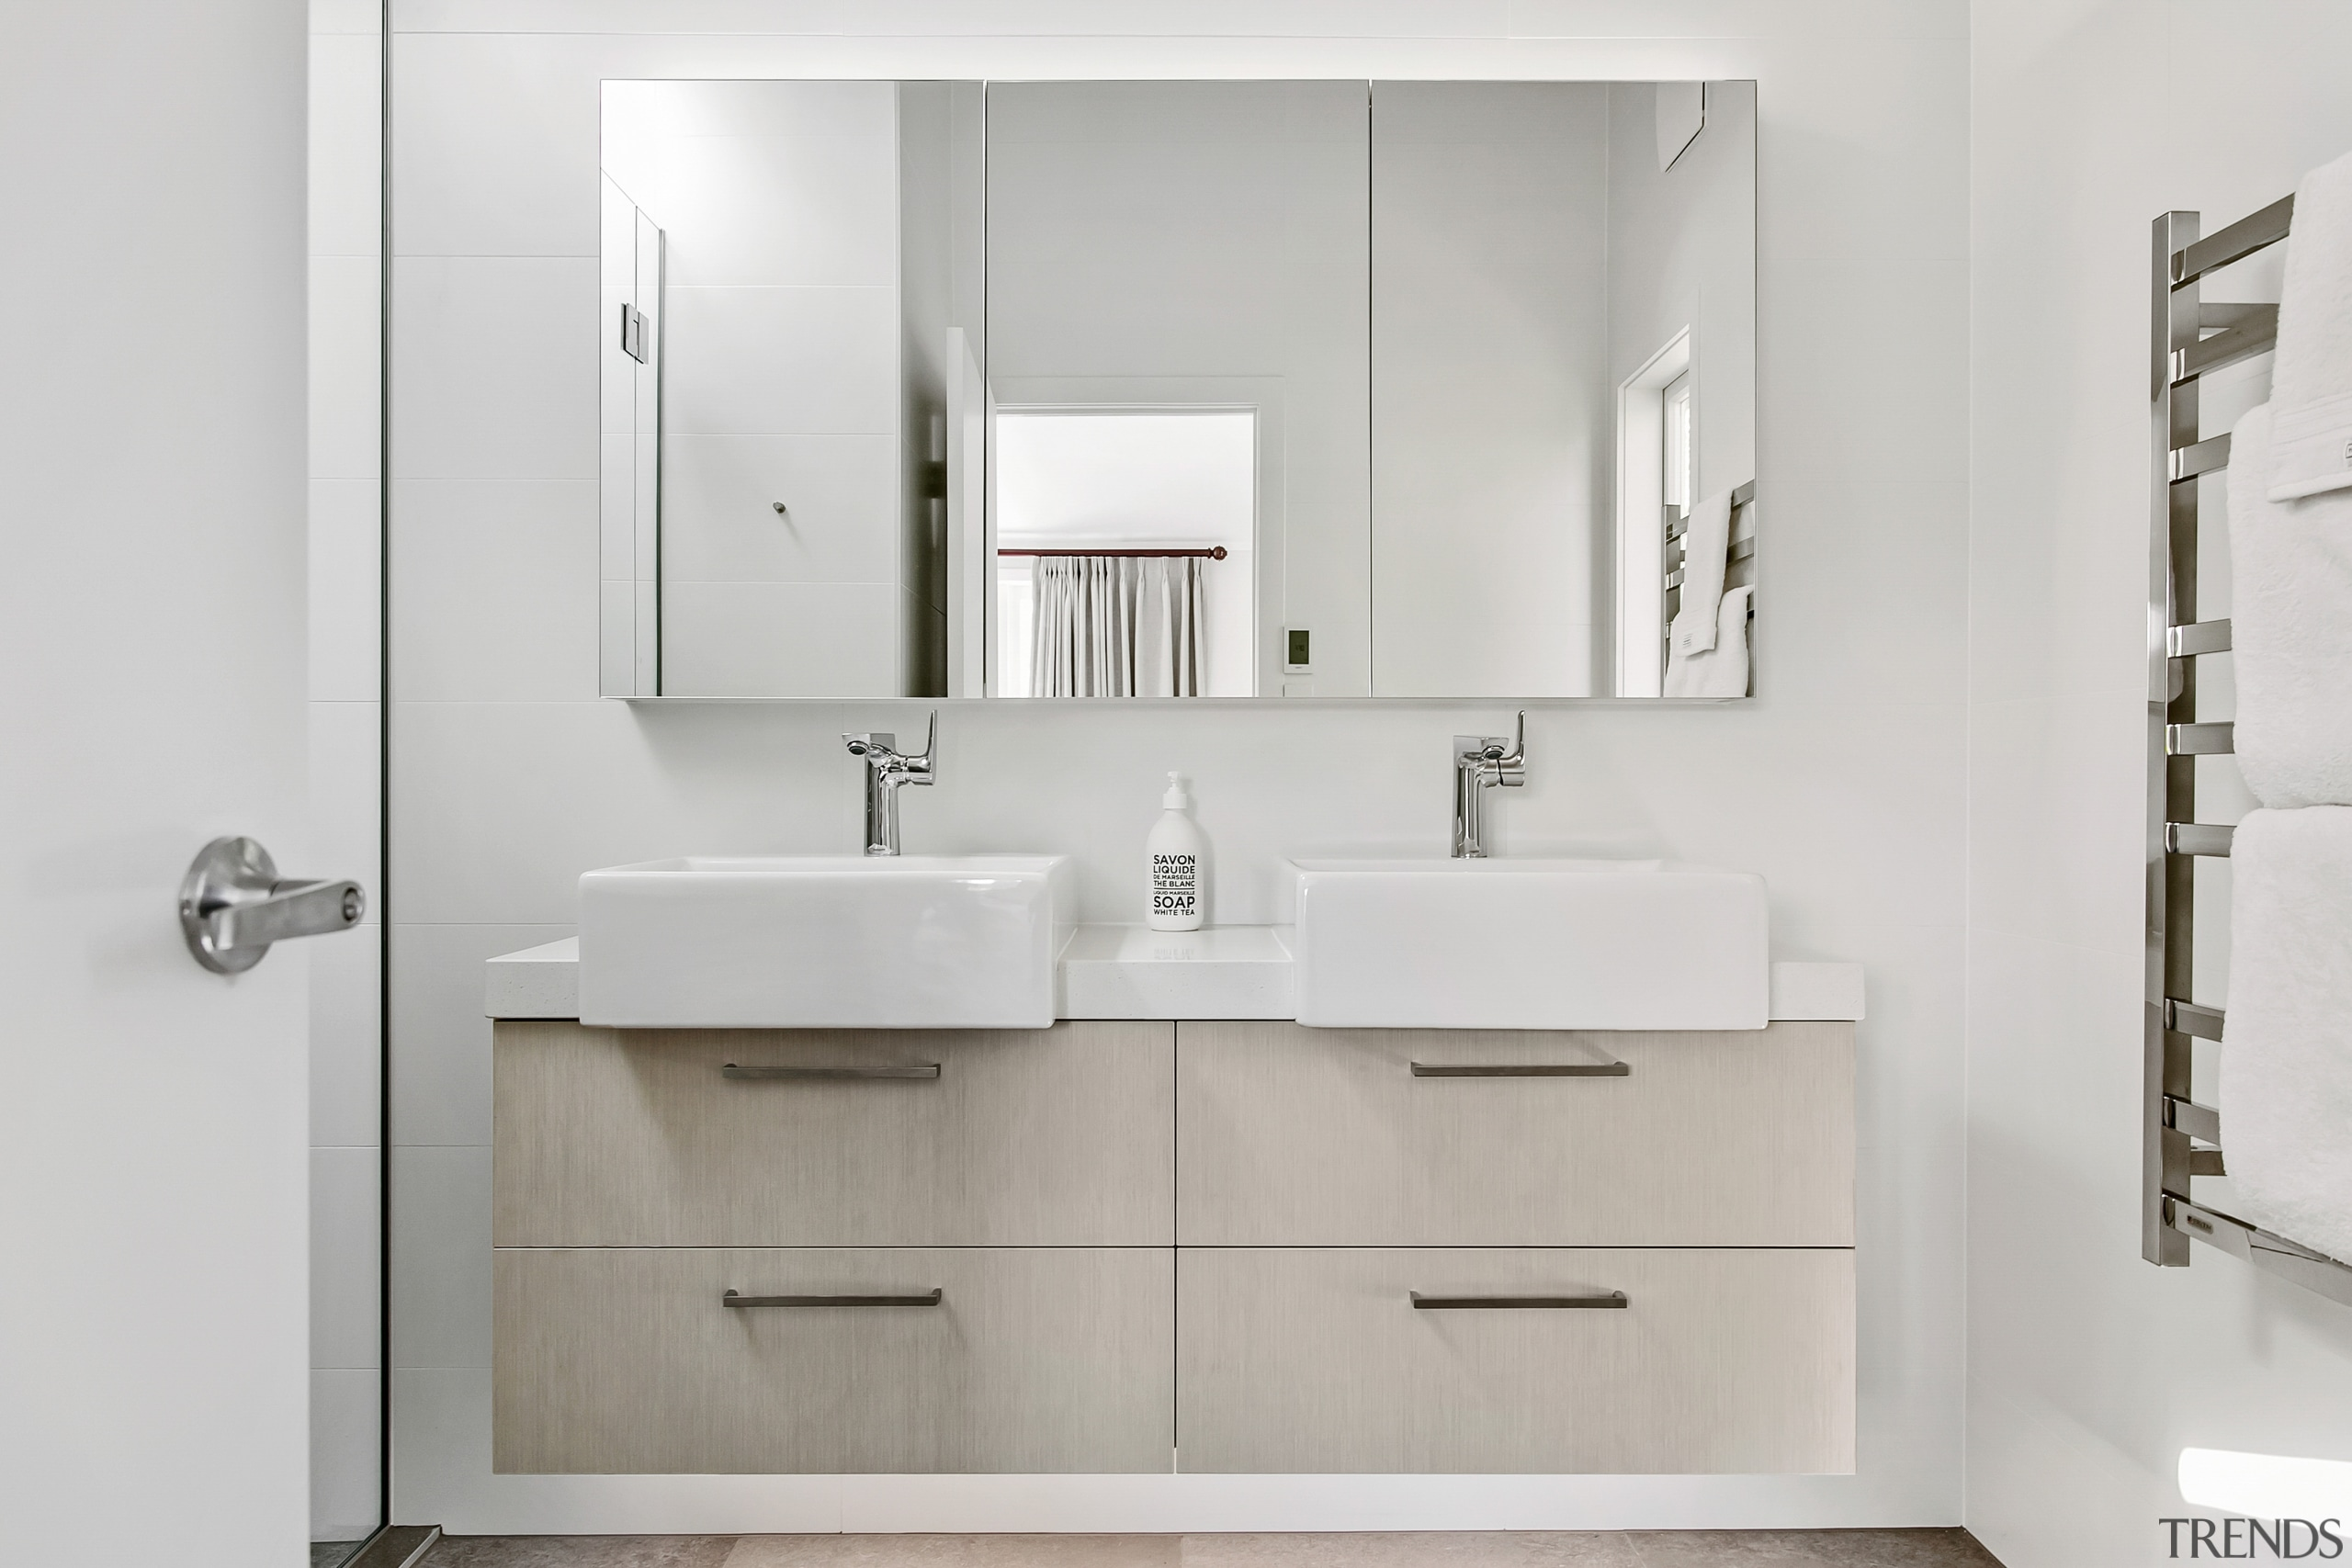 Large vanity mirrors add this bathroom's overall sense